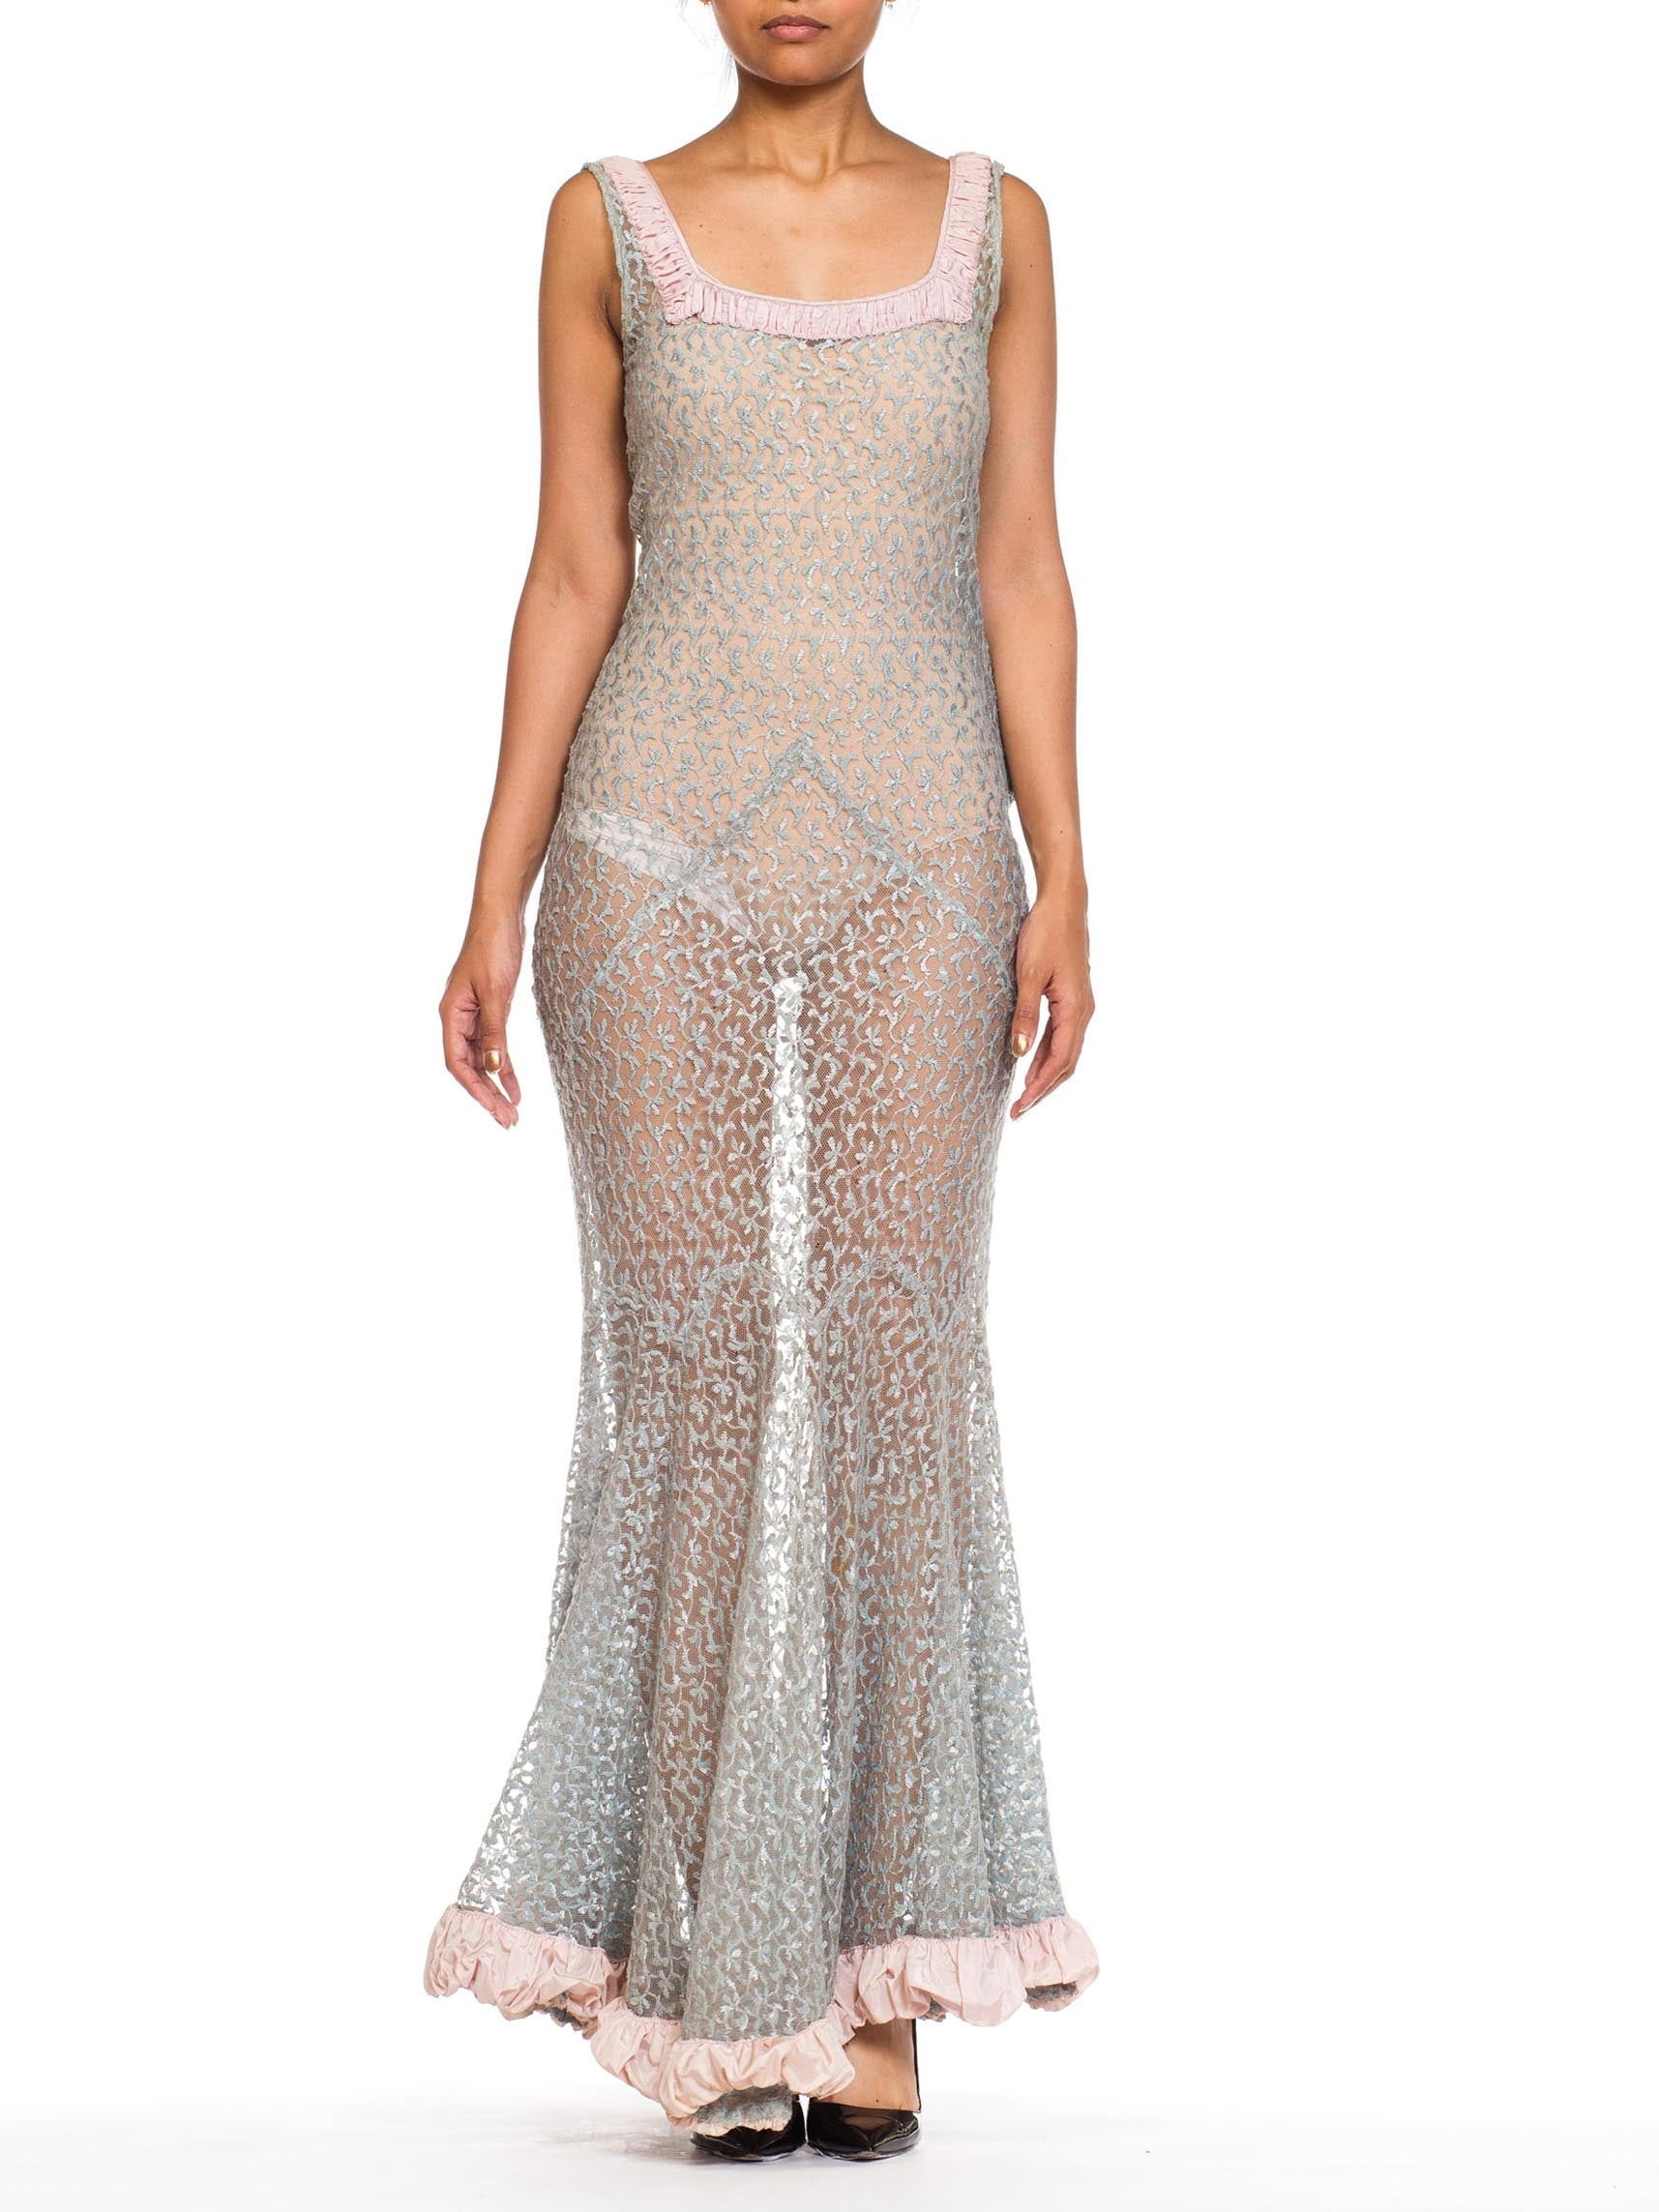 Sheerlace Embroided Net 1930s Gown – MORPHEW